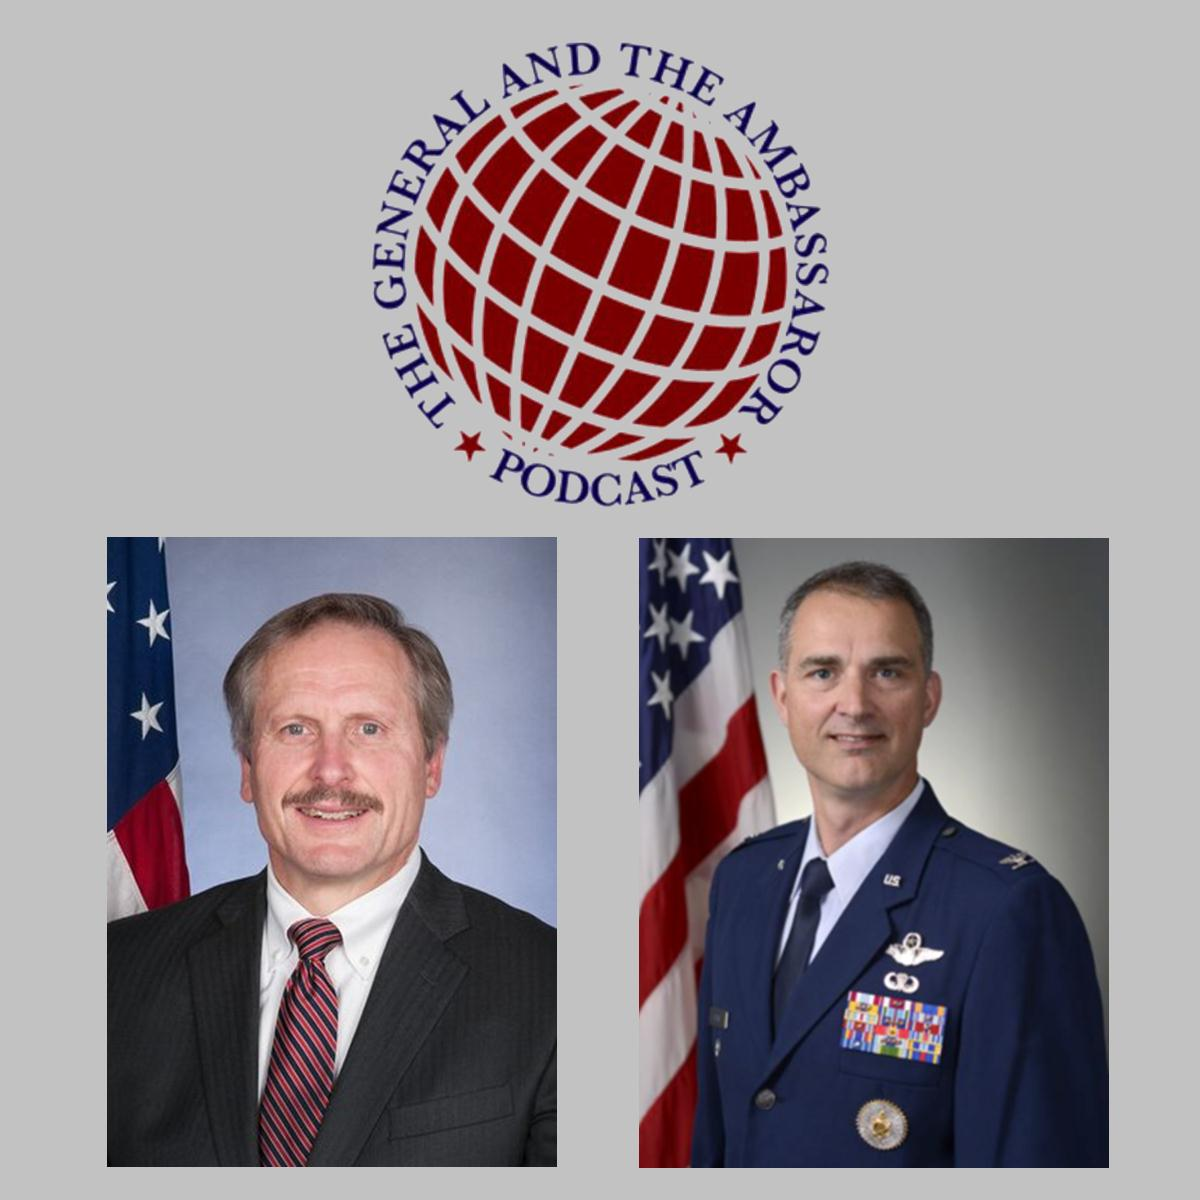 'The General and the Ambassador' discuss the U.S. and Azerbaijan